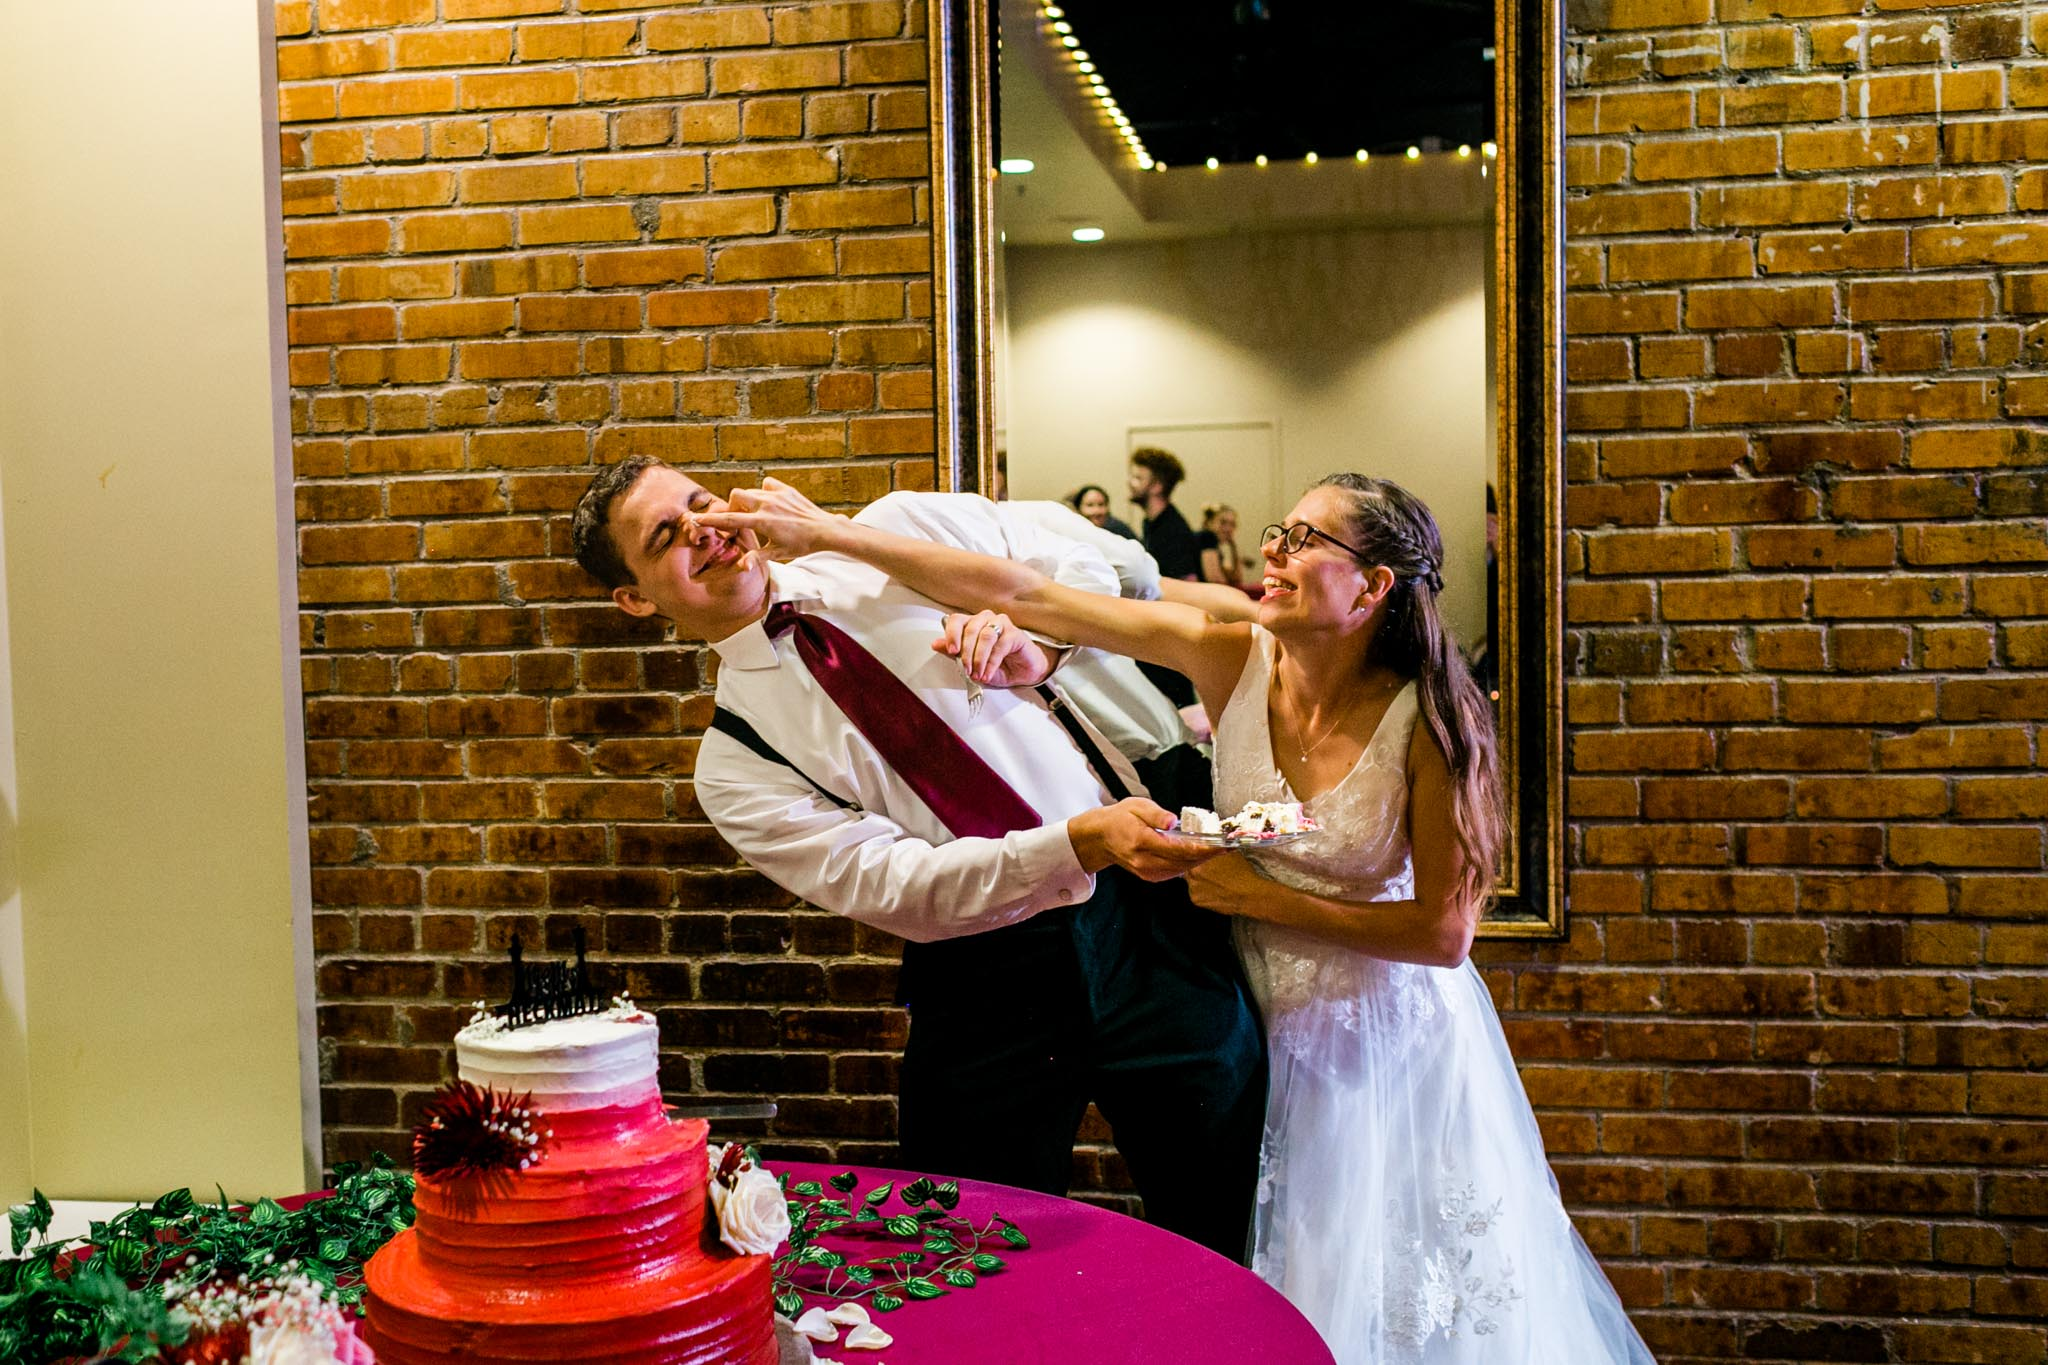 Bride and groom feeding cake to each other | Raleigh Wedding Photographer | By G. Lin Photography